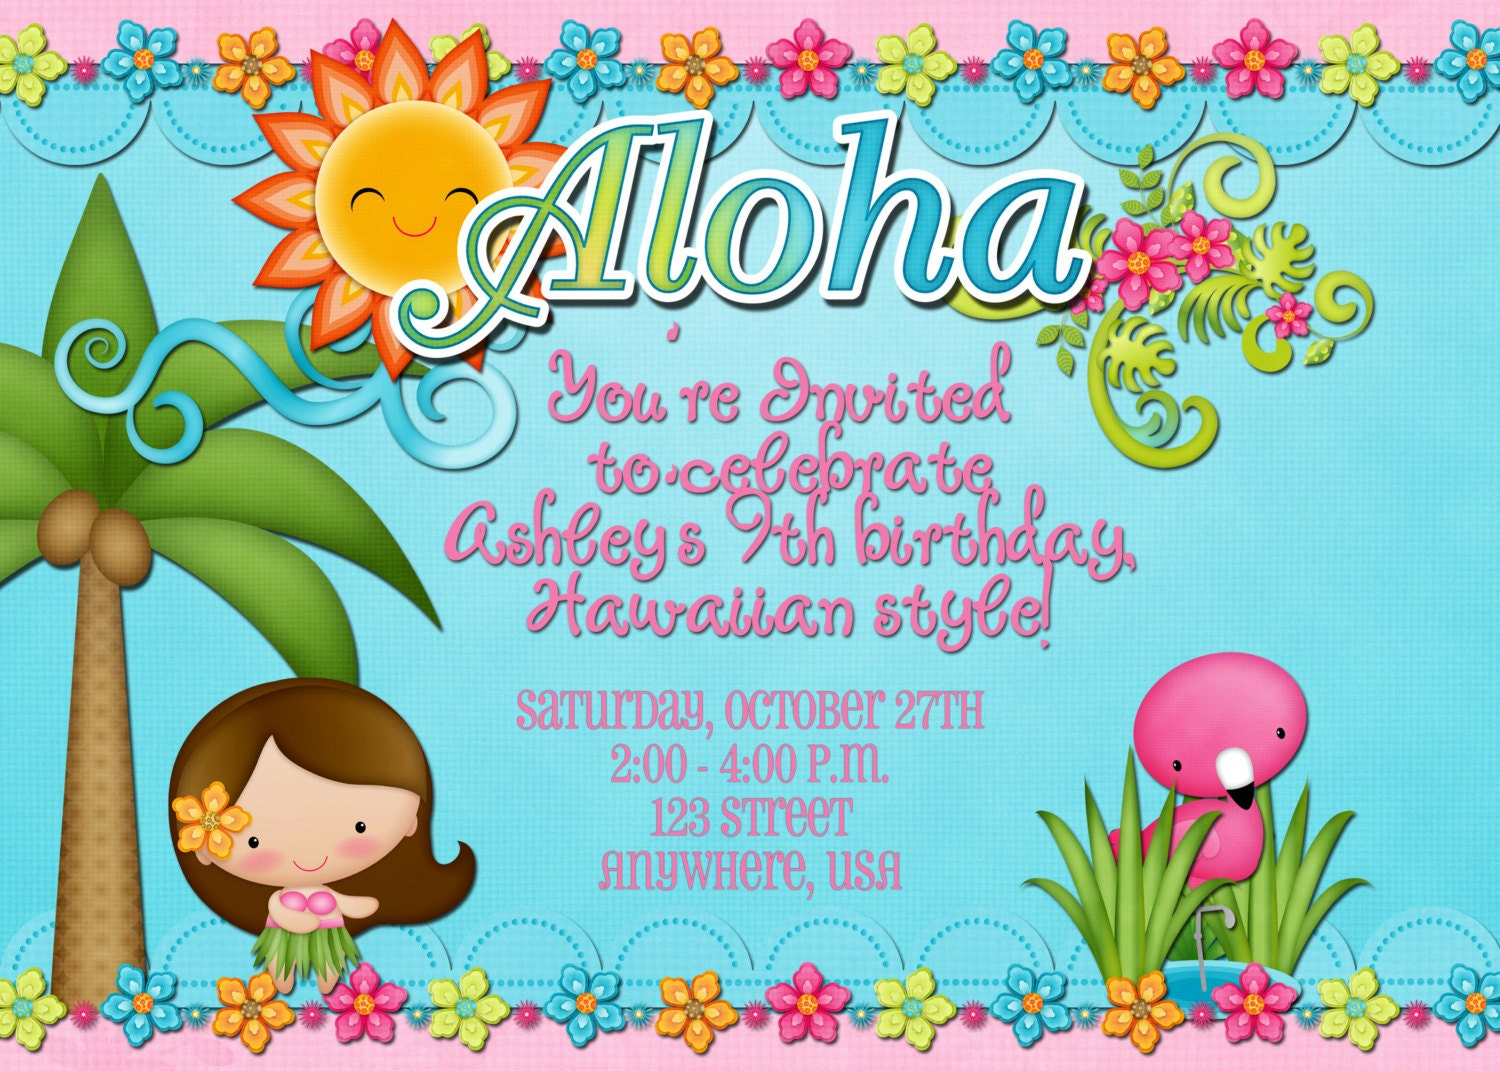 Birthday Party Invitation Wording For Adults as amazing invitation sample